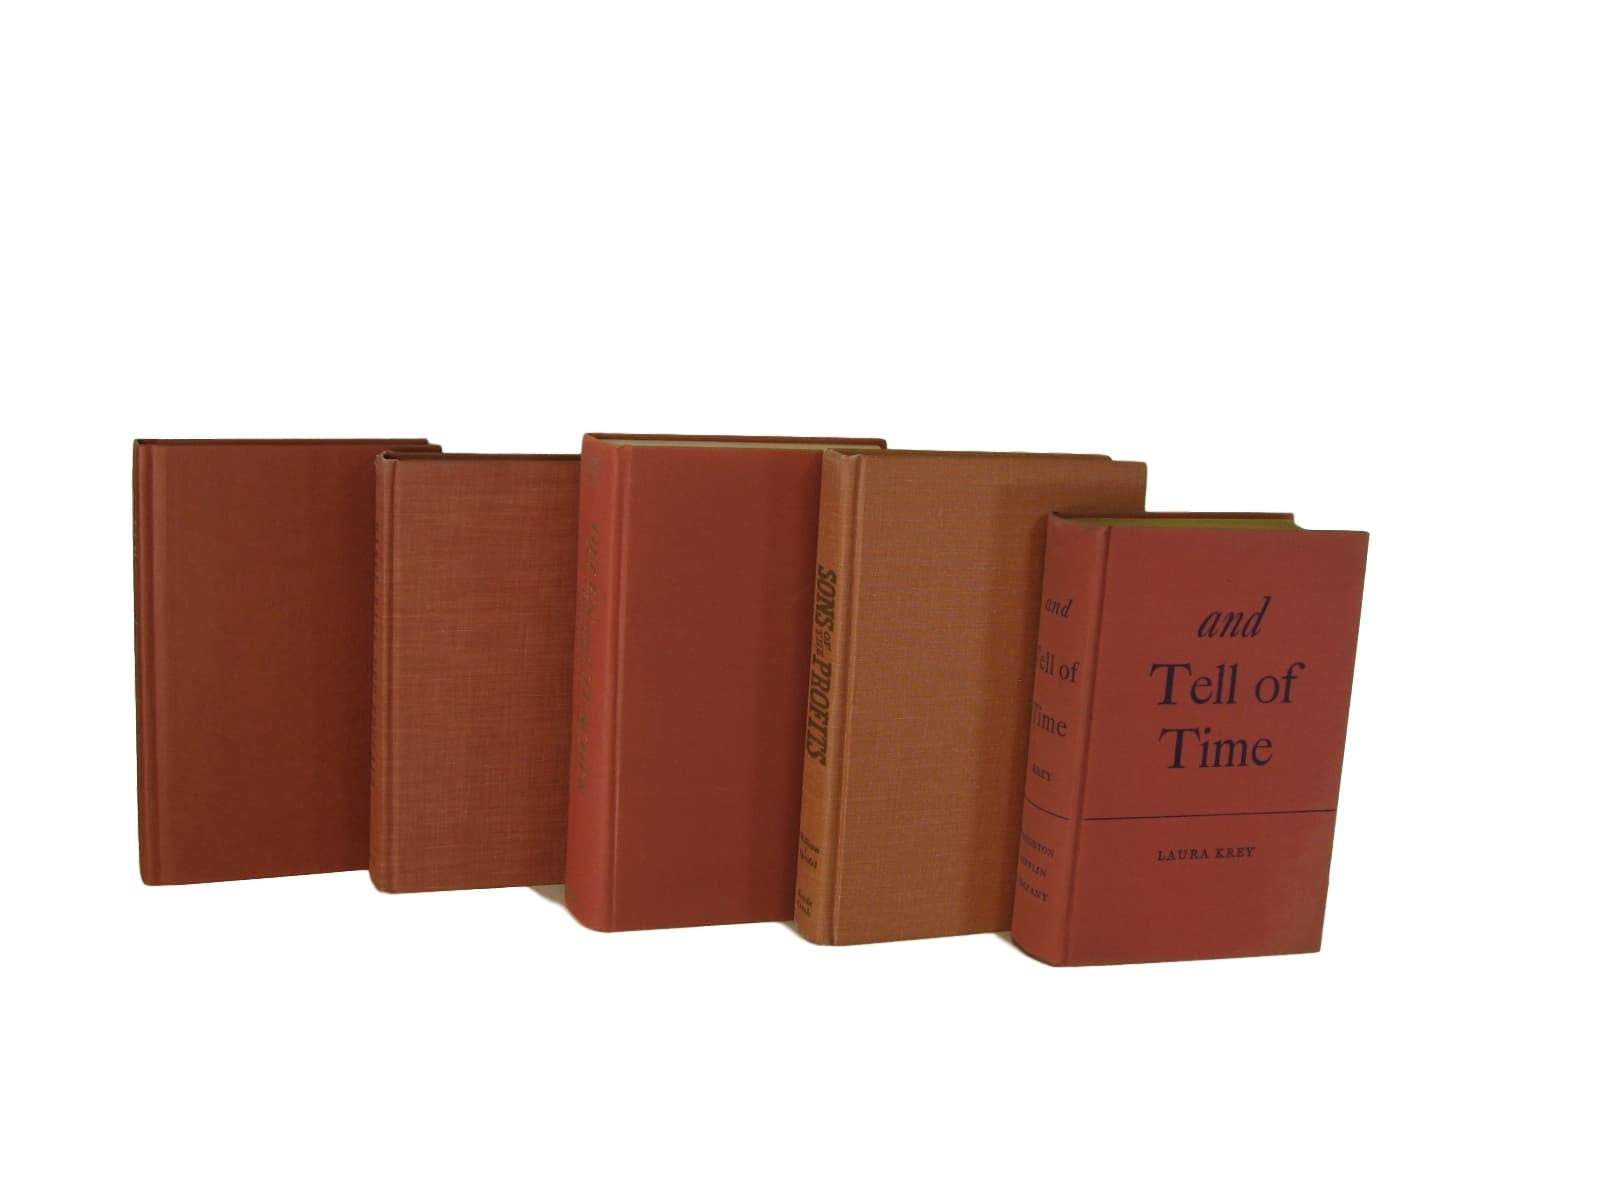 Earth-tone Orange Terra Cotta  Vintage Books  for Decor, S/5 - Decades of Vintage